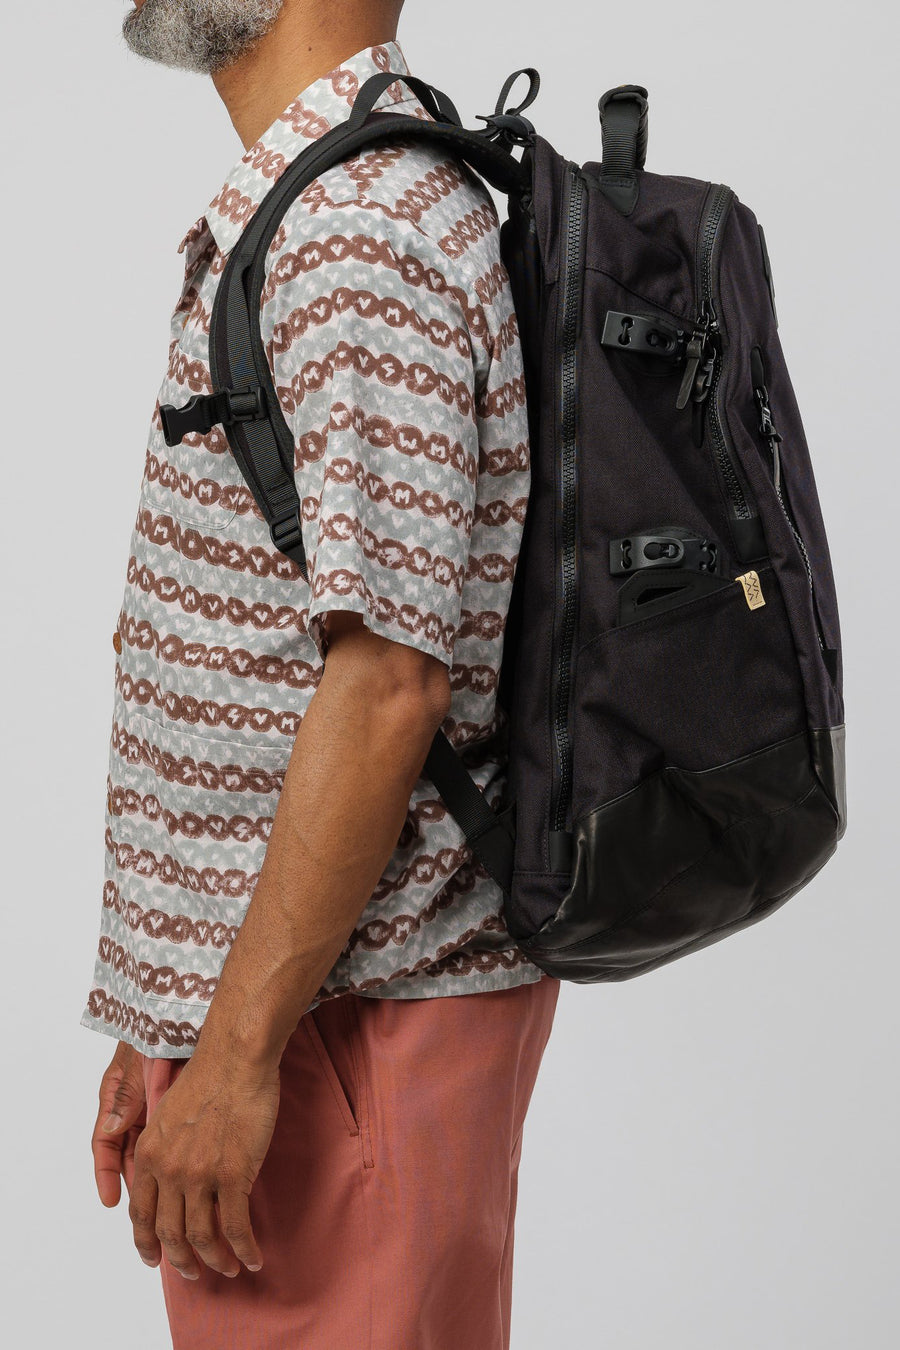 visvim 20XL Cordura Backpack Veg Lamb 2019 in Black - Notre